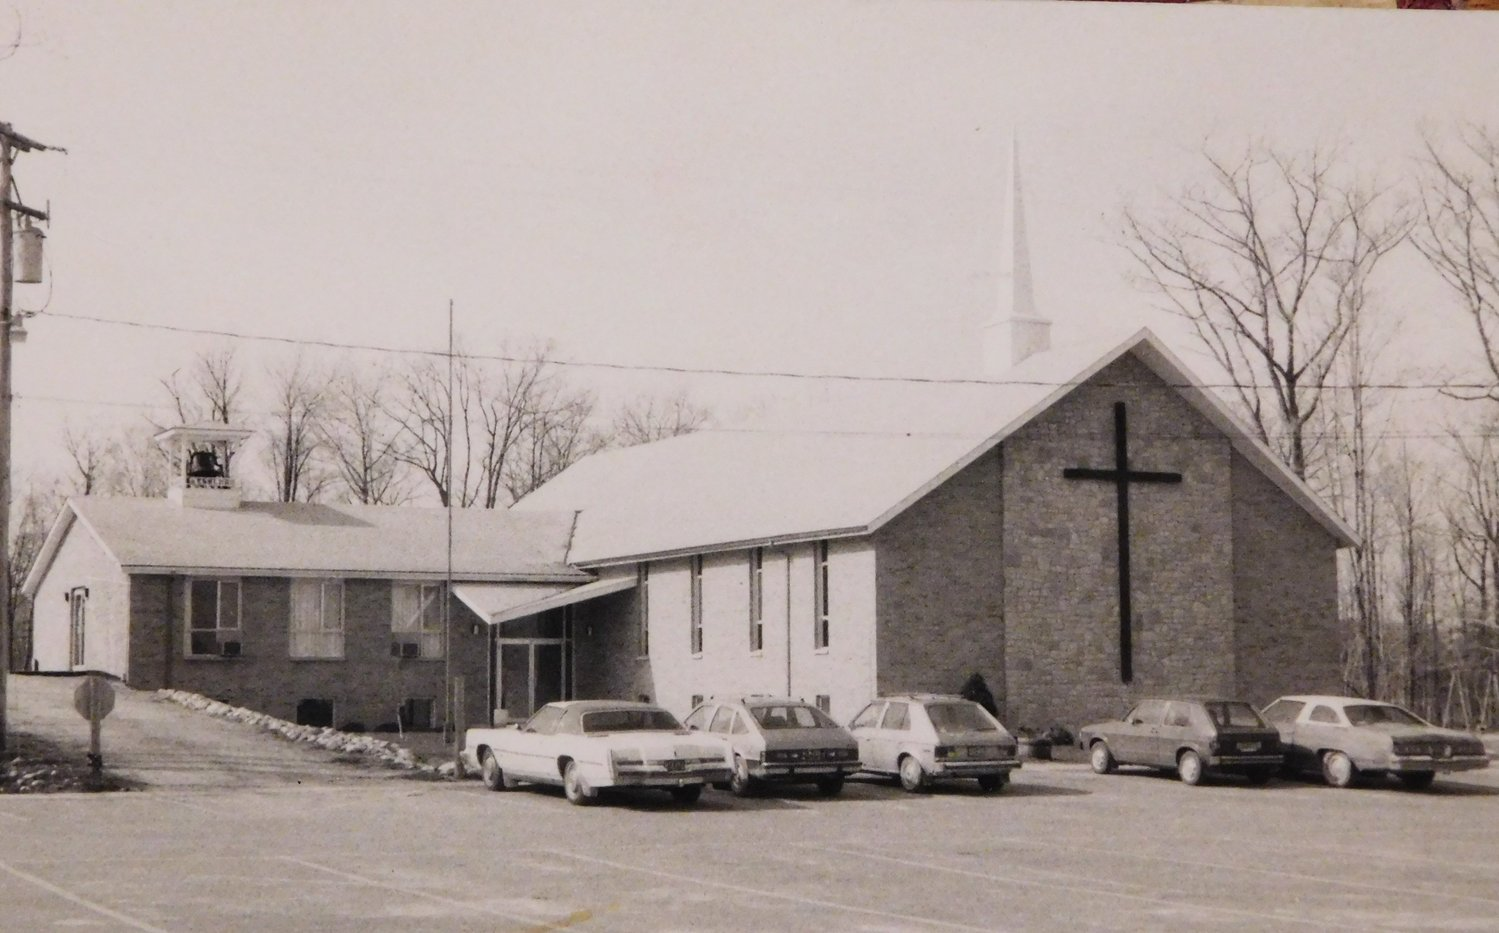 Grace Fellowship Church built in 1968.  PIctured here in 1983. The cornerstone was laid by the Rev. Carl Briggs in 1968.